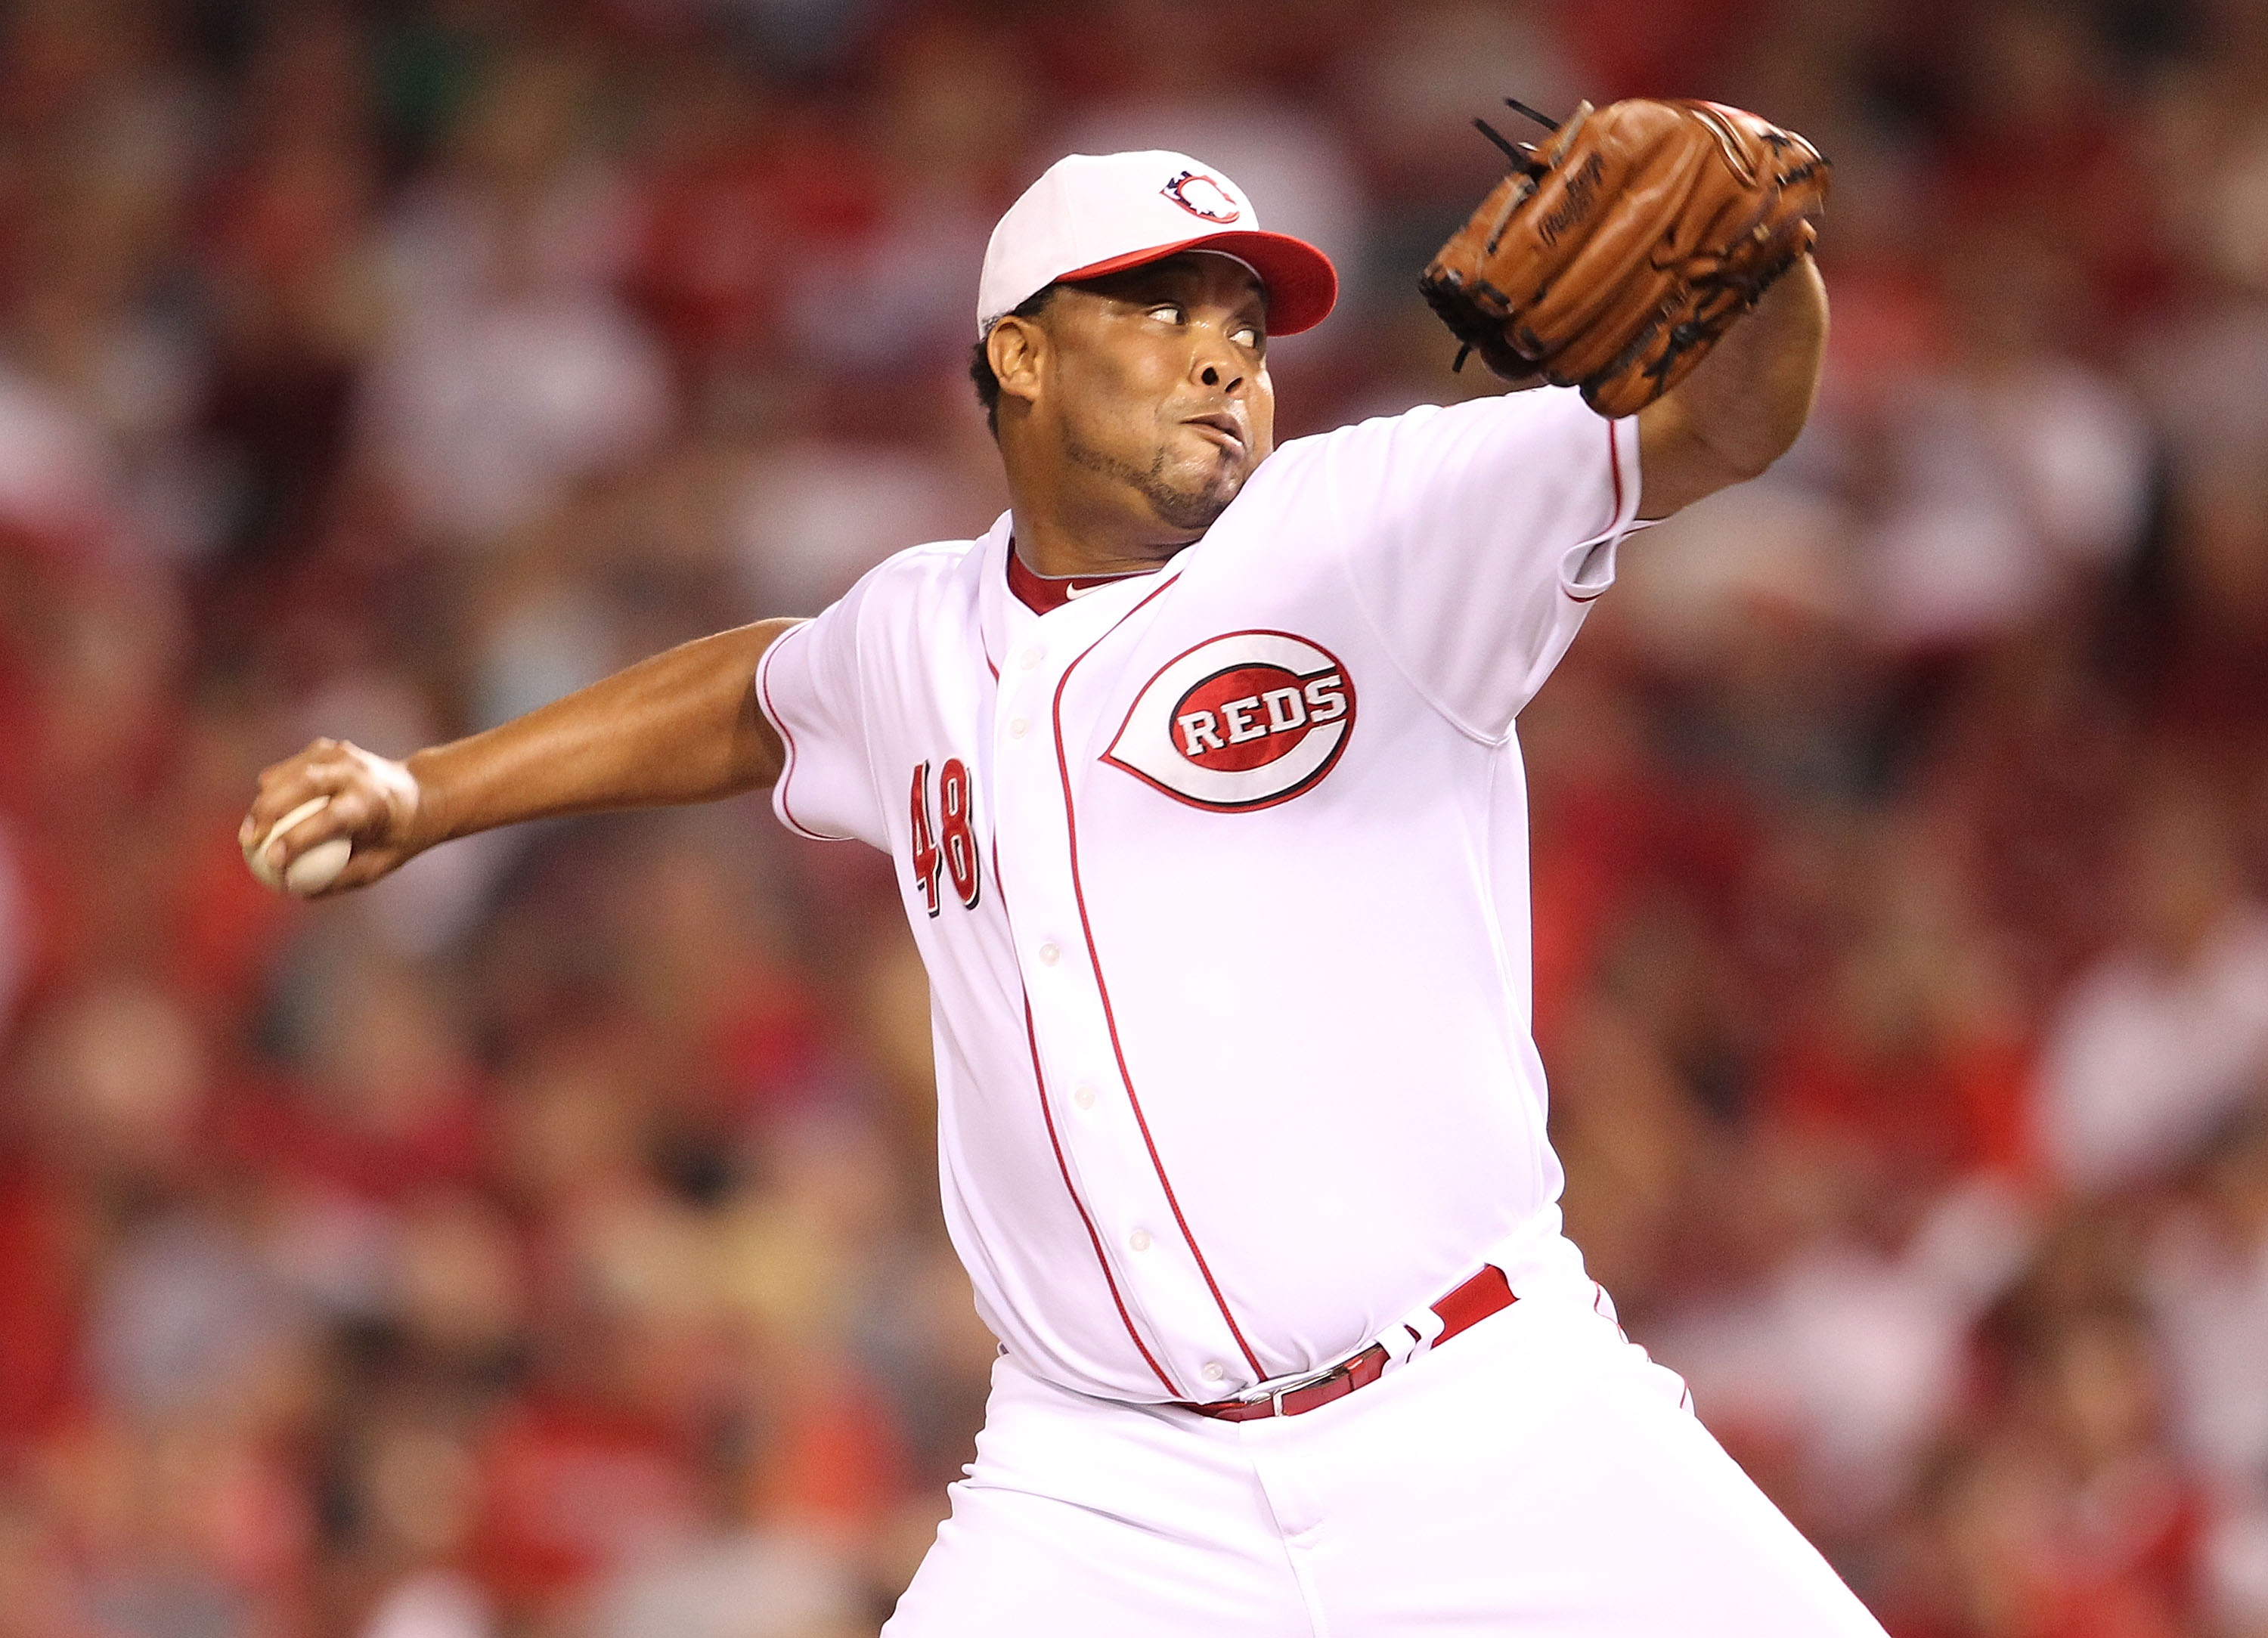 CINCINNATI - SEPTEMBER 11:  Francisco Cordero #48 of the Cincinnati Reds throws a pitch during the game against the Pittsburg Pirates at Great American Ball Park on September 11, 2010 in Cincinnati, Ohio. The Reds won 5-4. (Photo by Andy Lyons/Getty Image